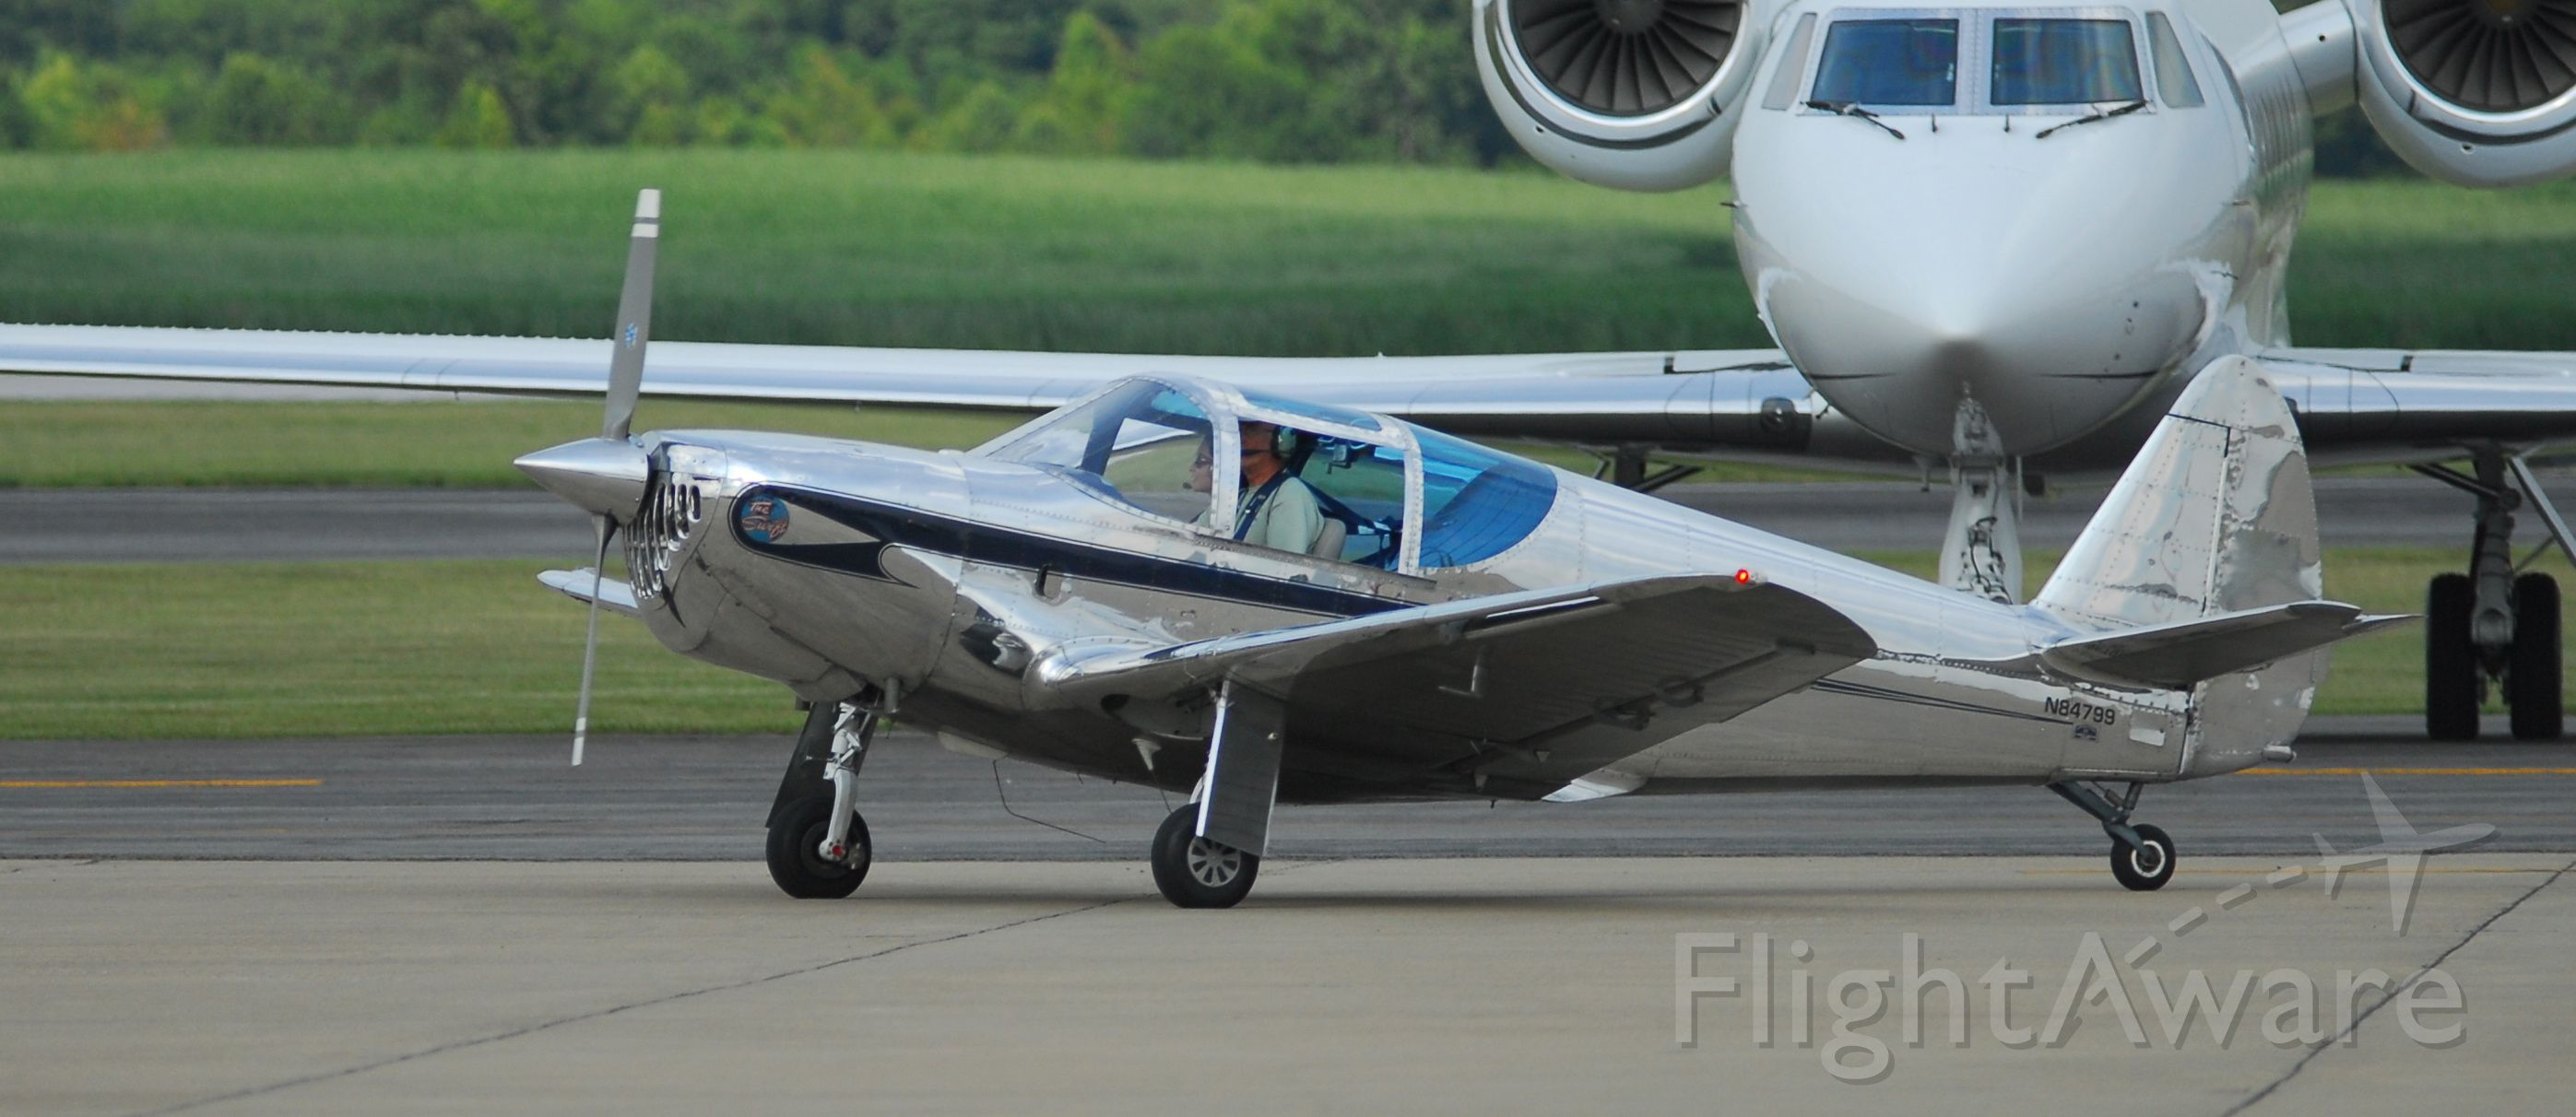 SUPERMARINE Swift (N84799) - Taxiing in from demo flight at 2012 AHP Hangar Party.